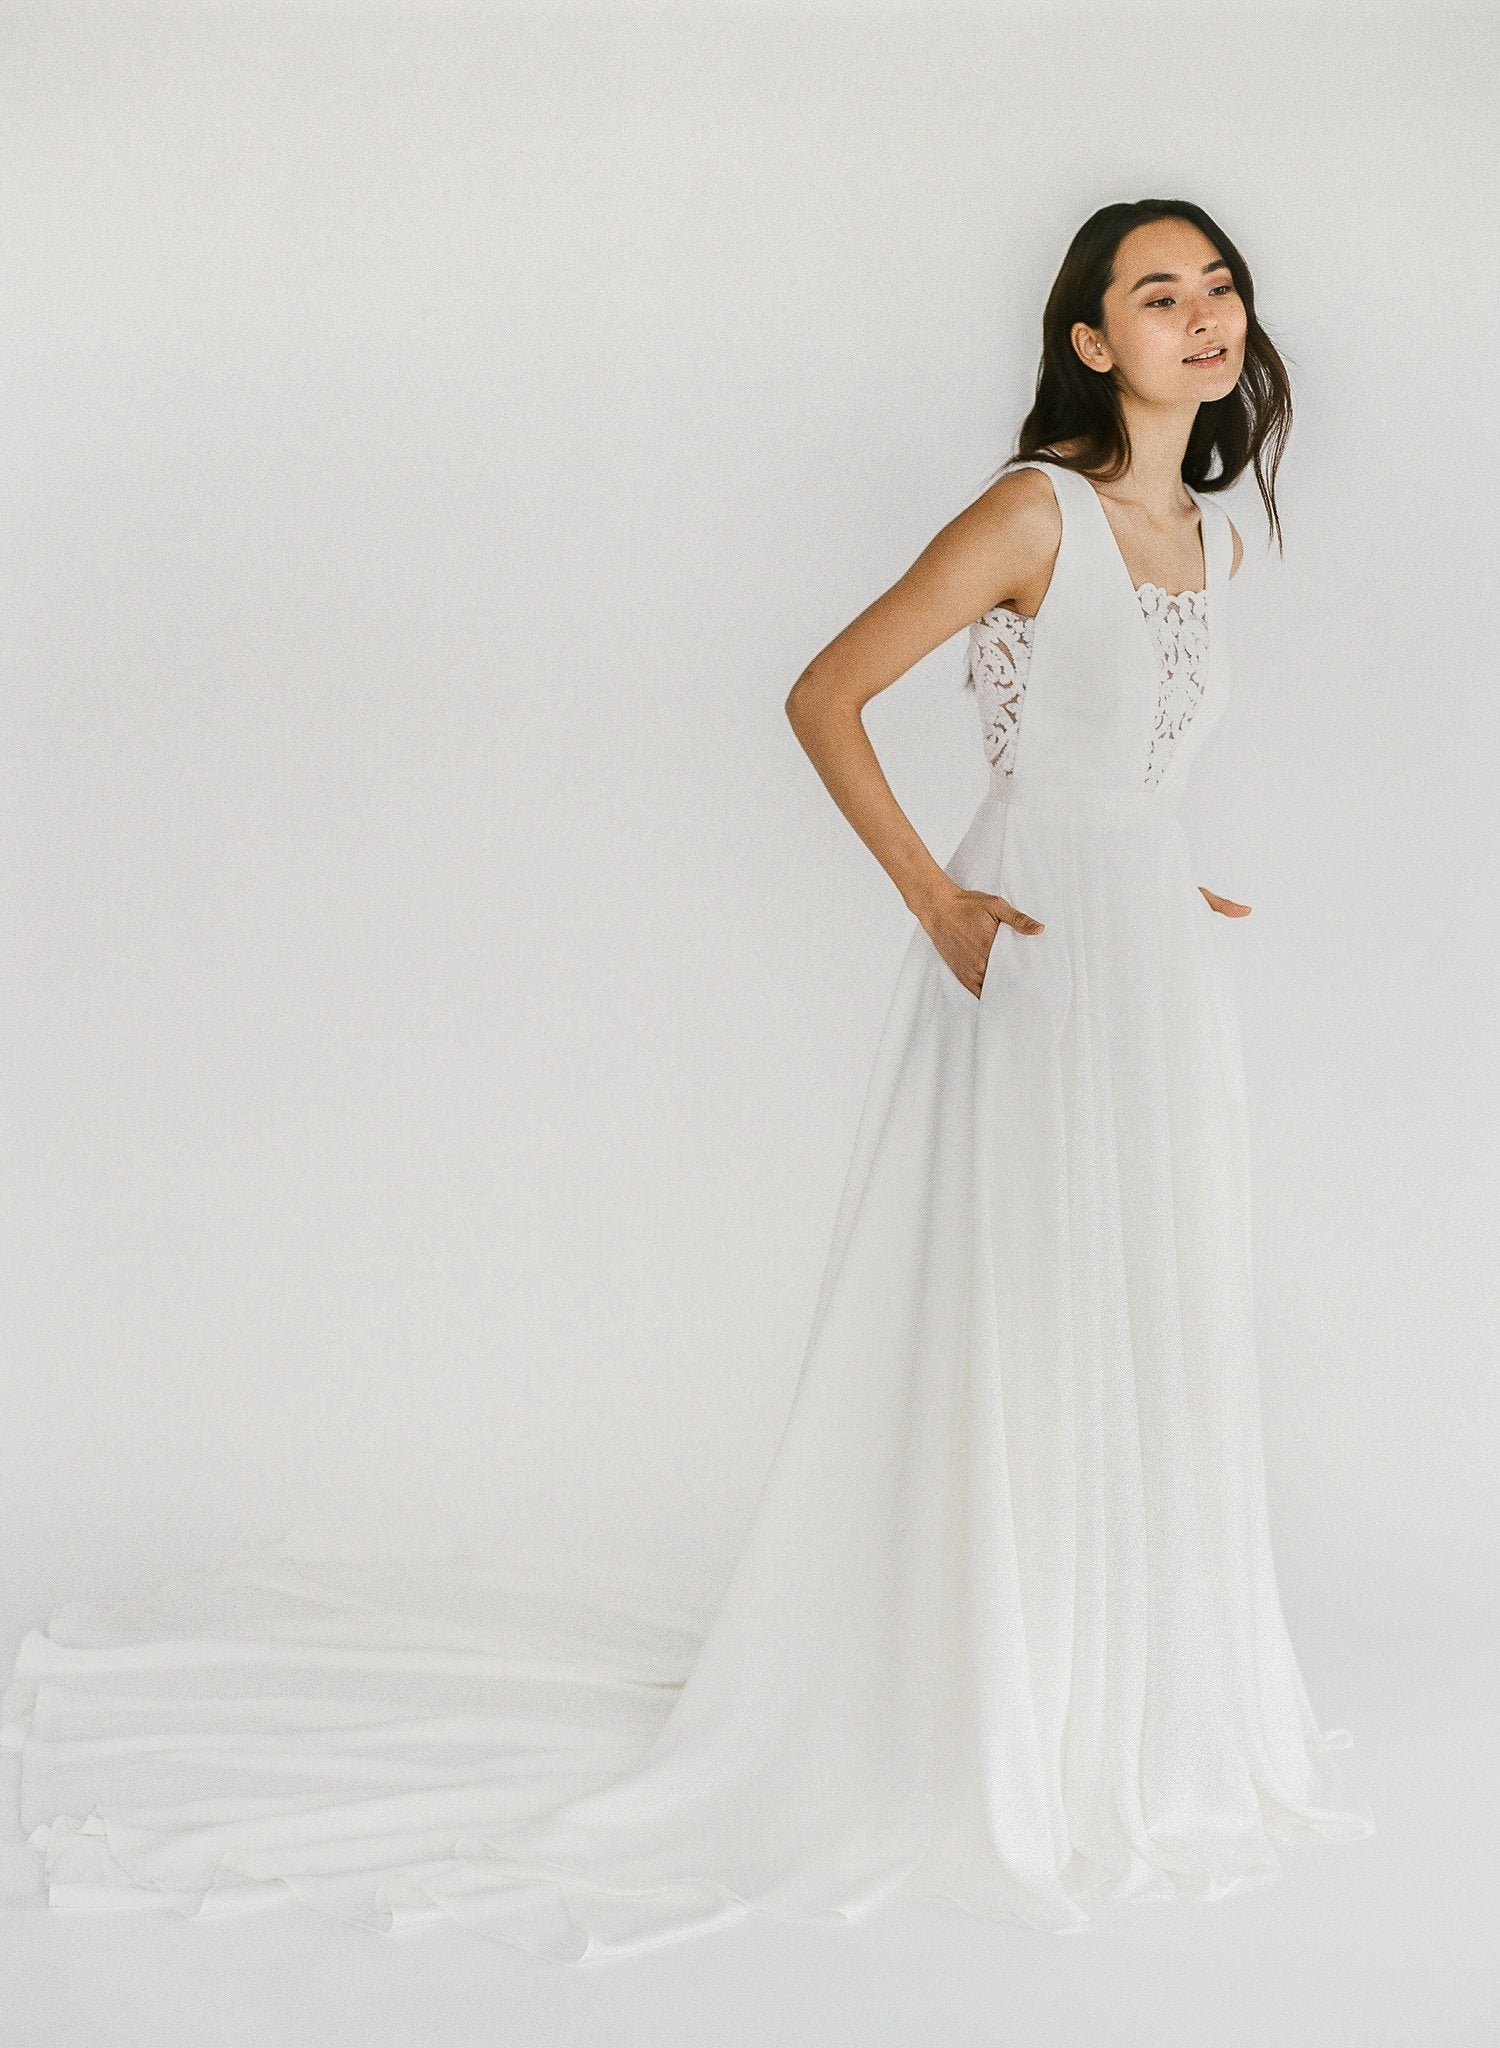 Ethical handmade elegant a-line crepe wedding dress with a low back, lace front, and pockets